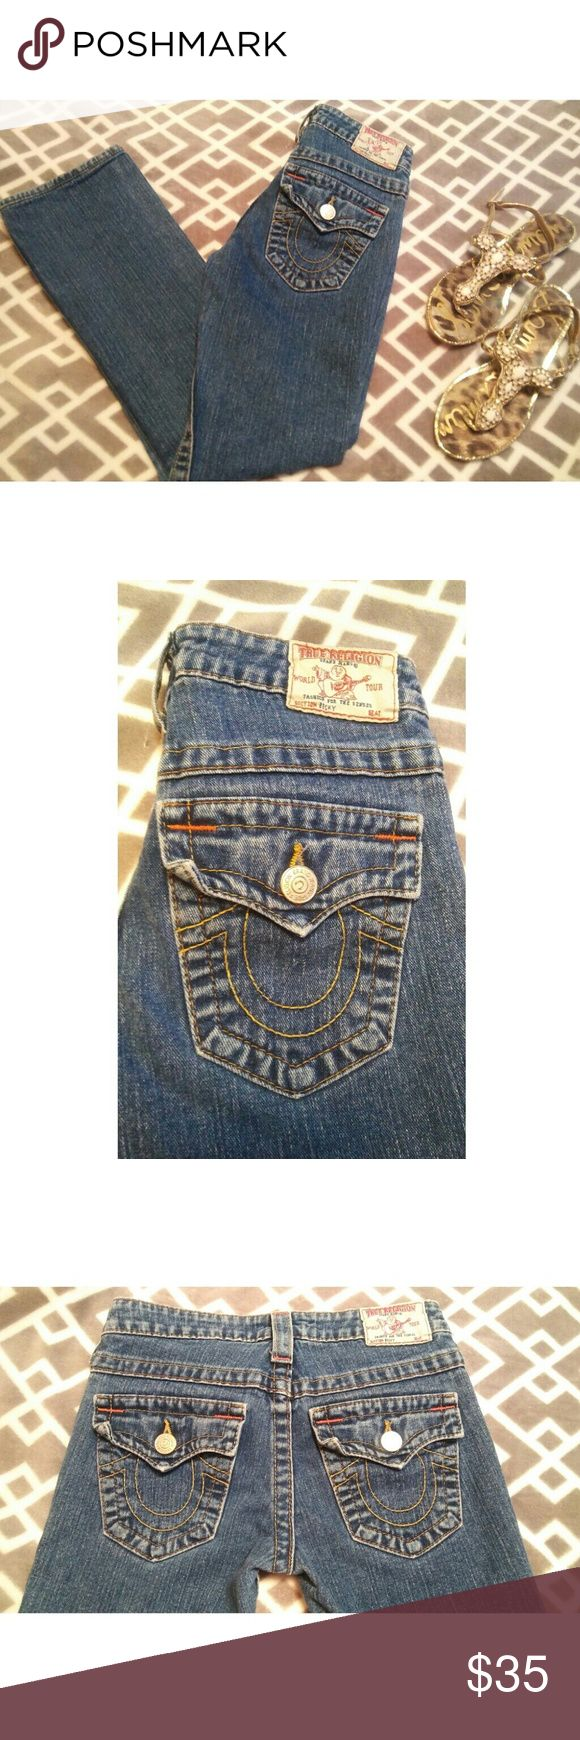 True Religion Straight Leg Denim Jeans The perfect jeans! True Religion staright leg jeans in perfect condition with back flap pockets. Medium Stone wash. BECKY STYLE A3564OM 98% Cotton 2% Spandex Women size 25  Item will ship SAME/NEXT day!!  OFFERS WELCOME! True Religion Jeans Straight Leg